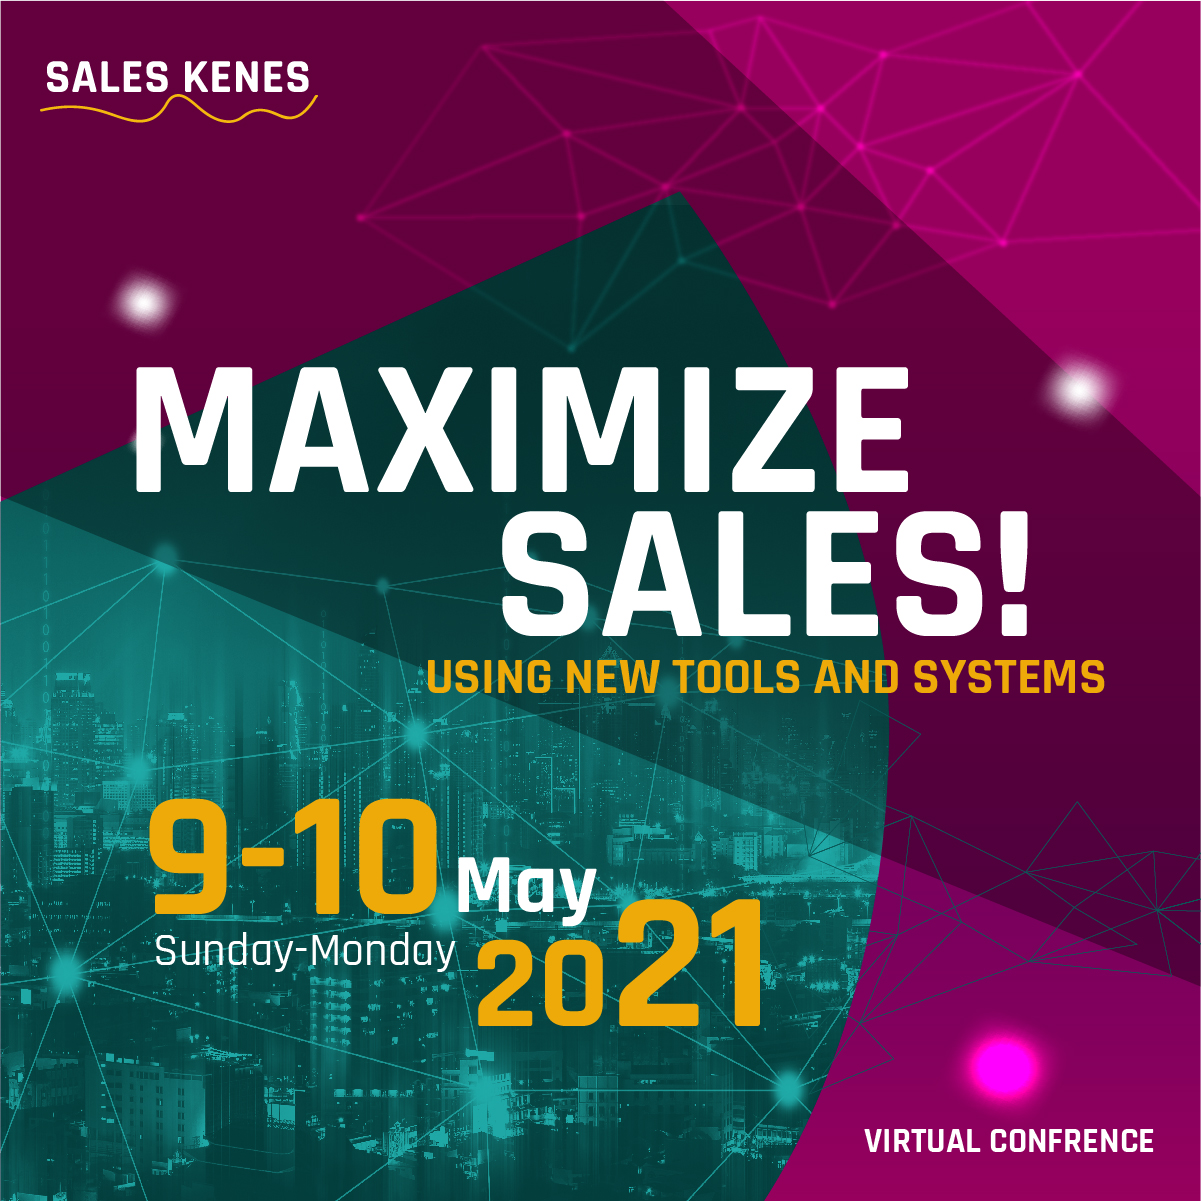 MAXIMIZE SALES! Using new tools and systems